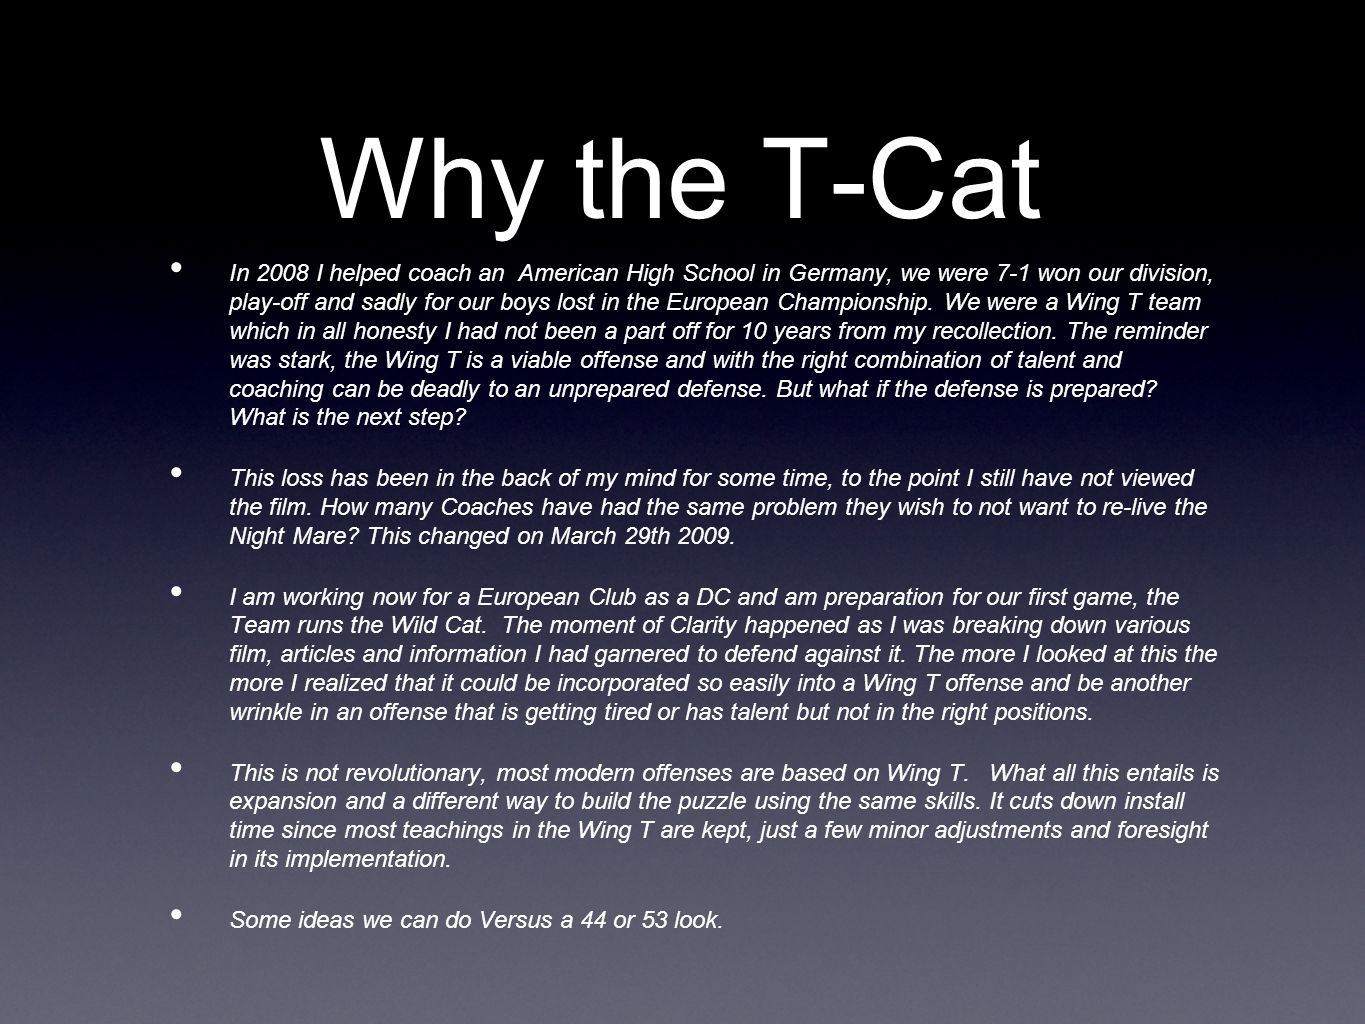 Why the T-Cat